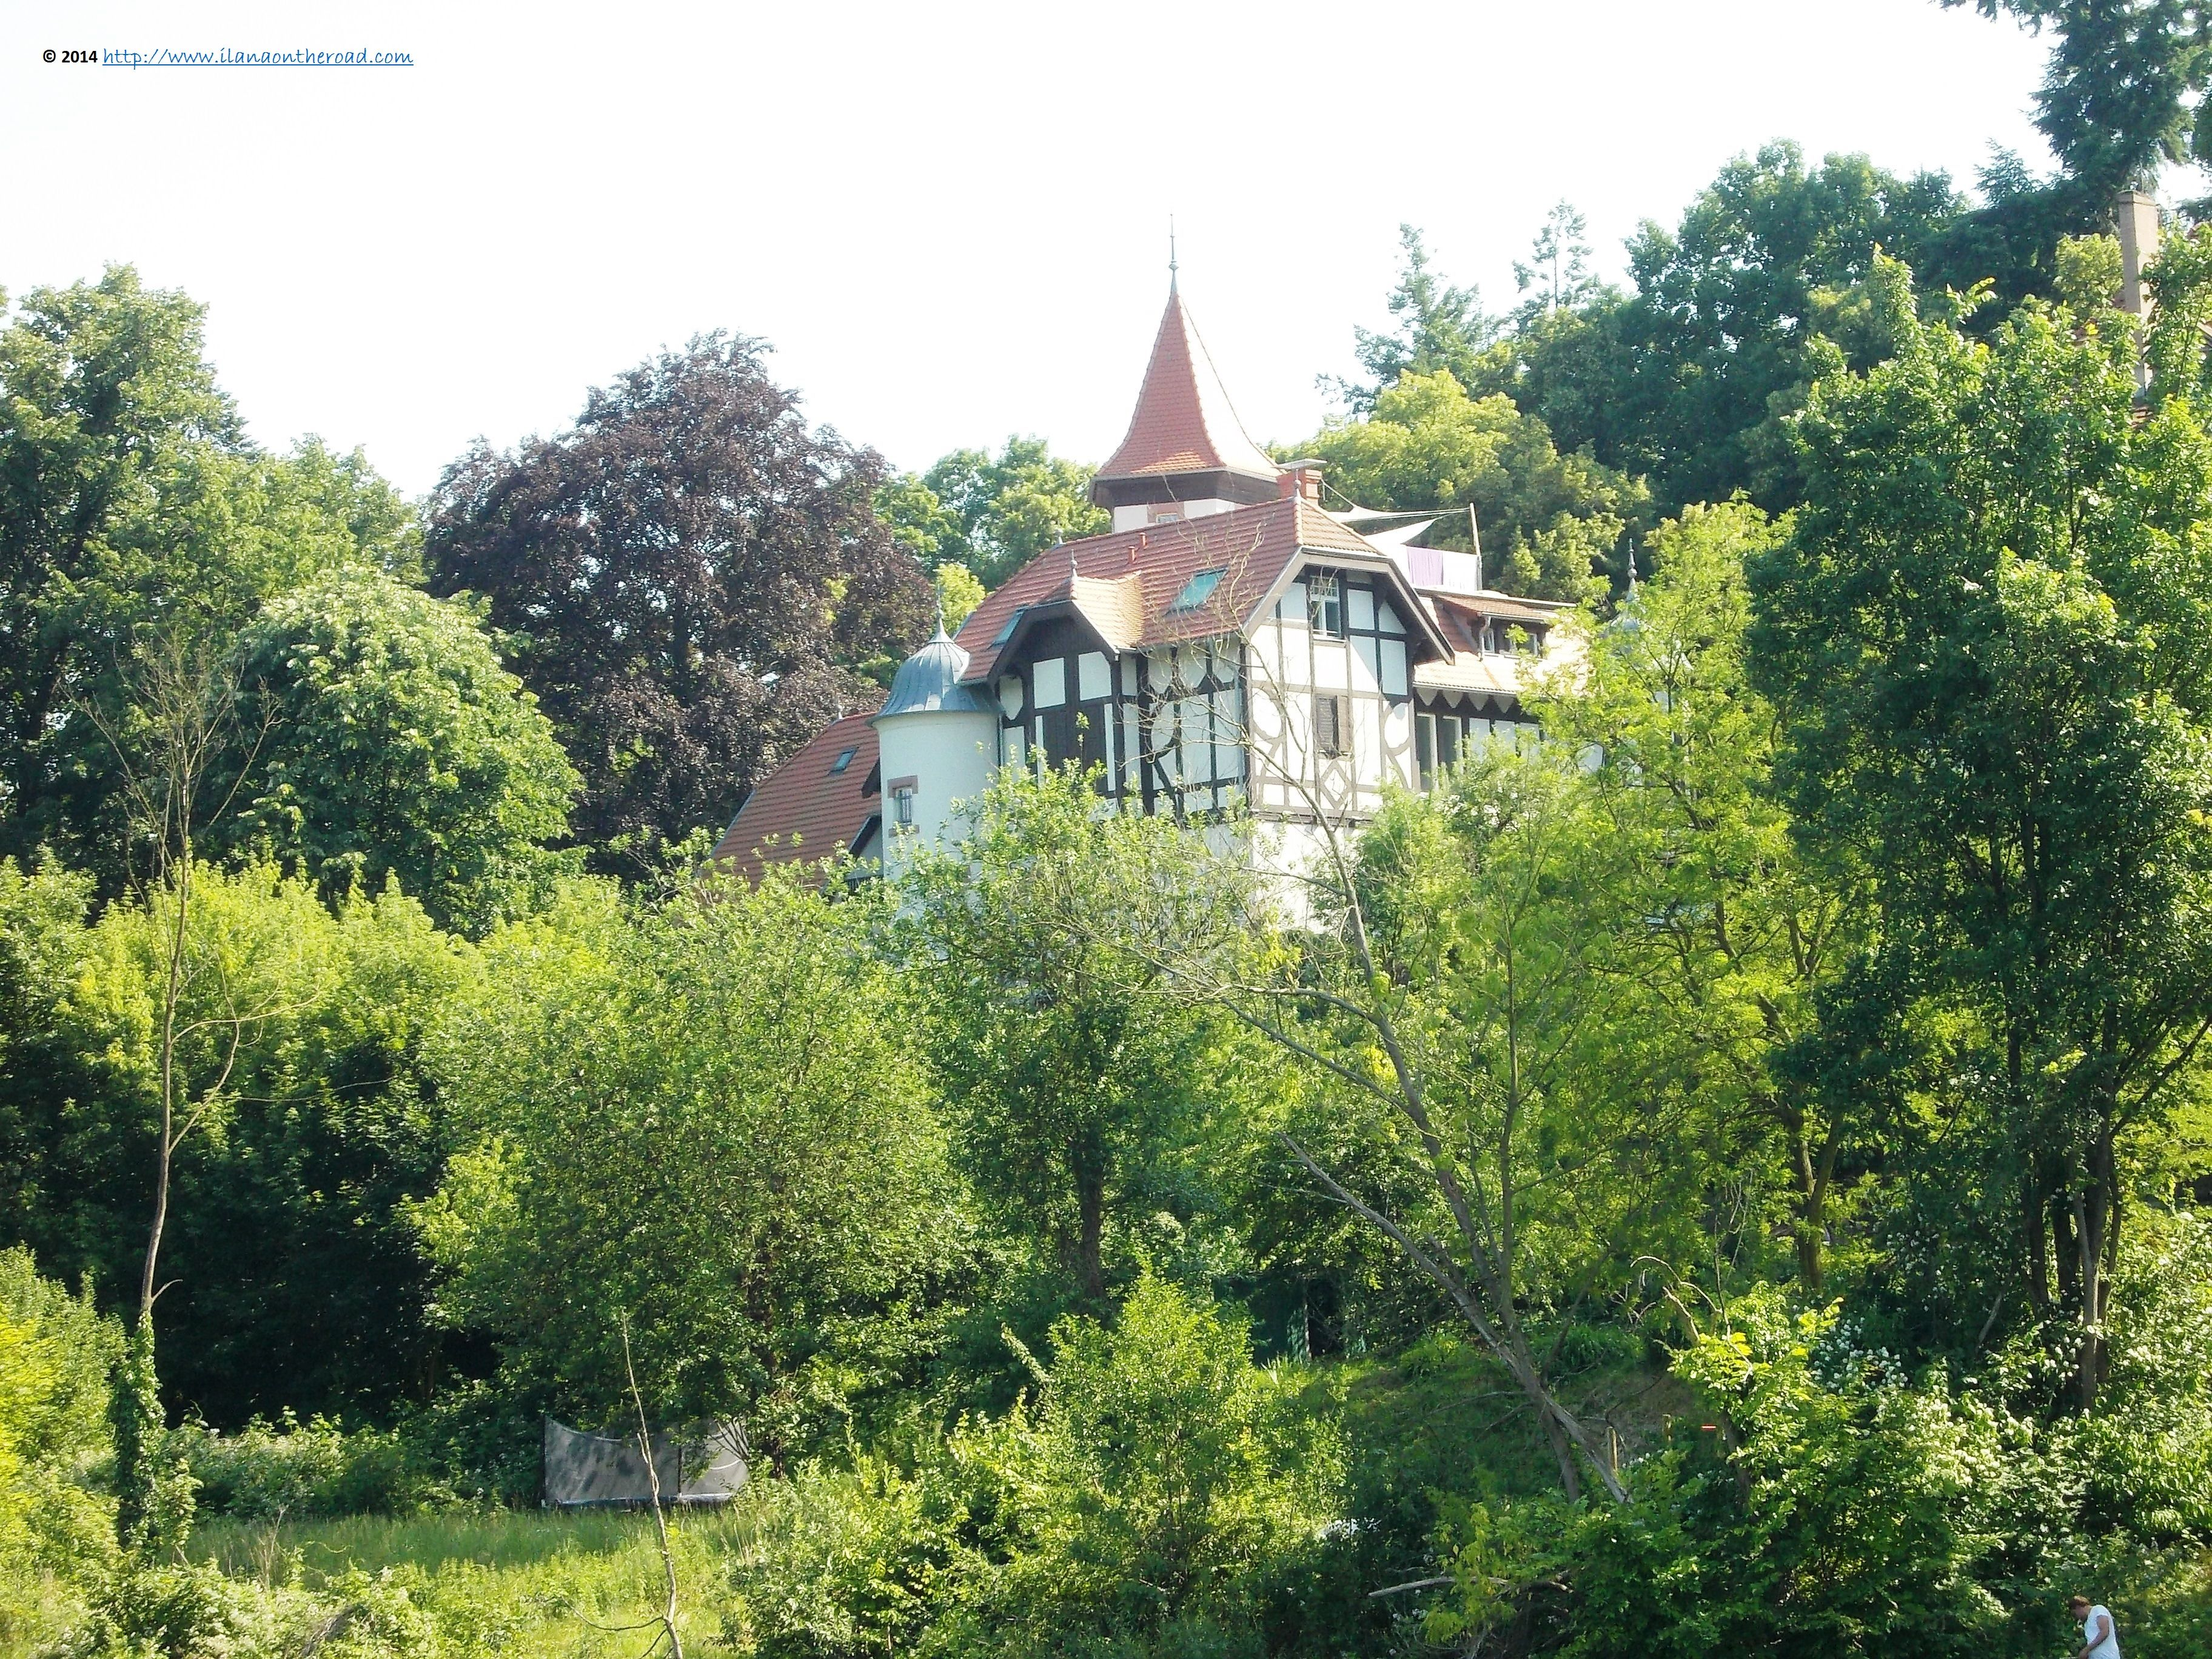 Boat tour around Wannsee: http://foreignerinberlin.blogspot.de/2014/06/boat-tour-around-wannsee.html